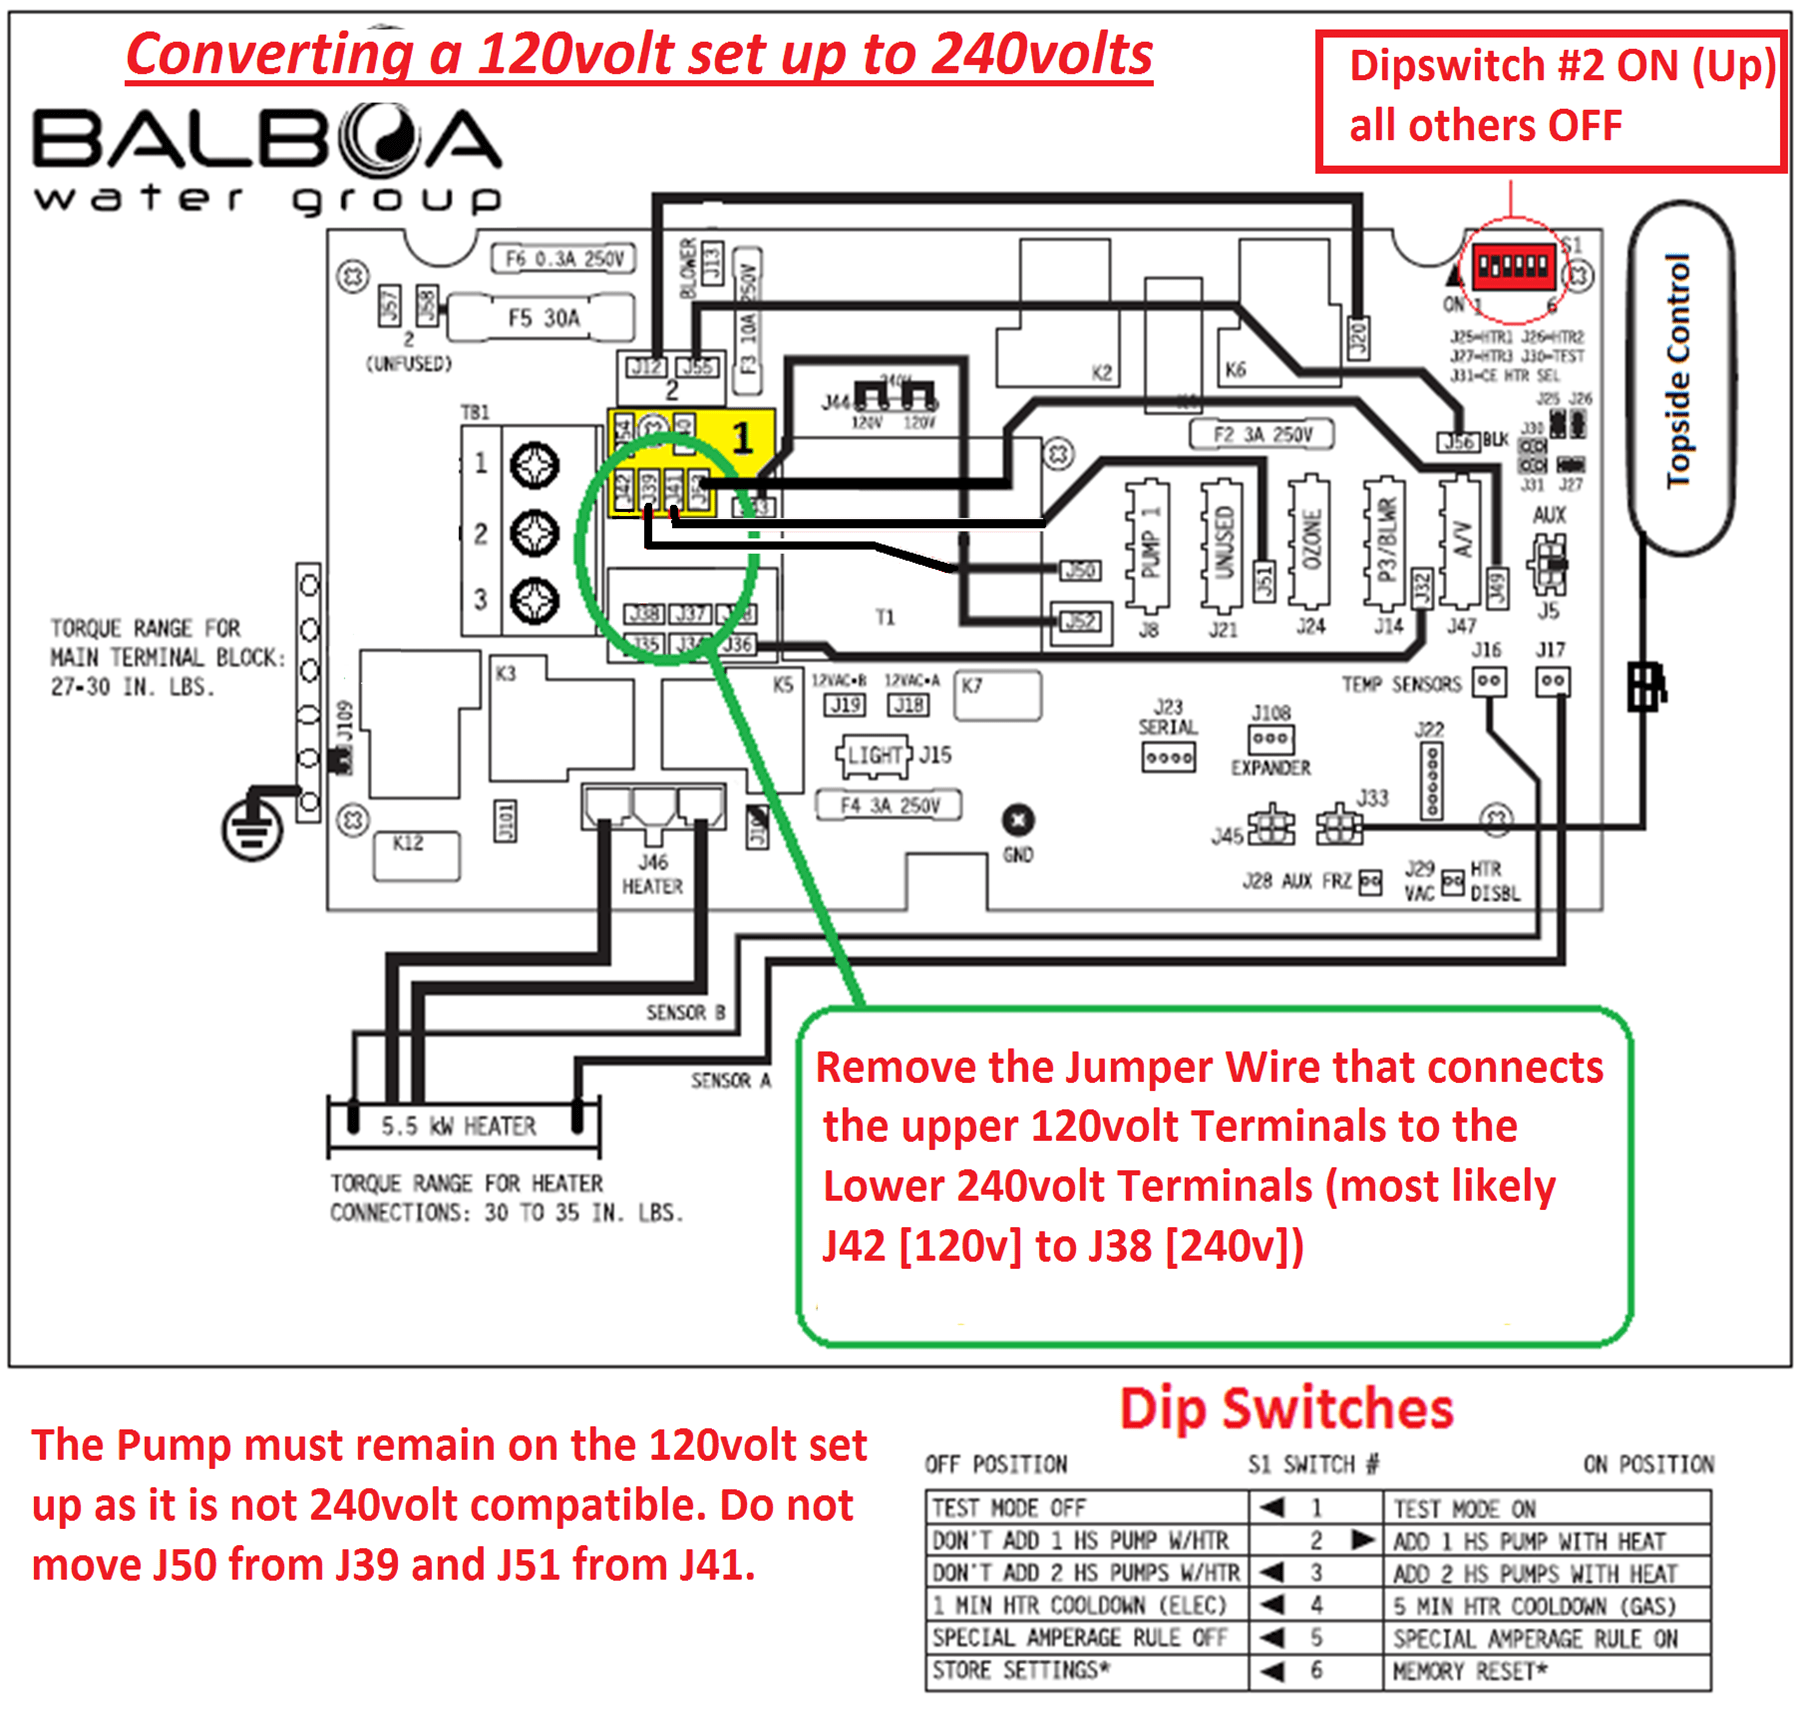 small resolution of electrical installation converting a 120v balboa bp to 240v hydro quip heater wiring schematics